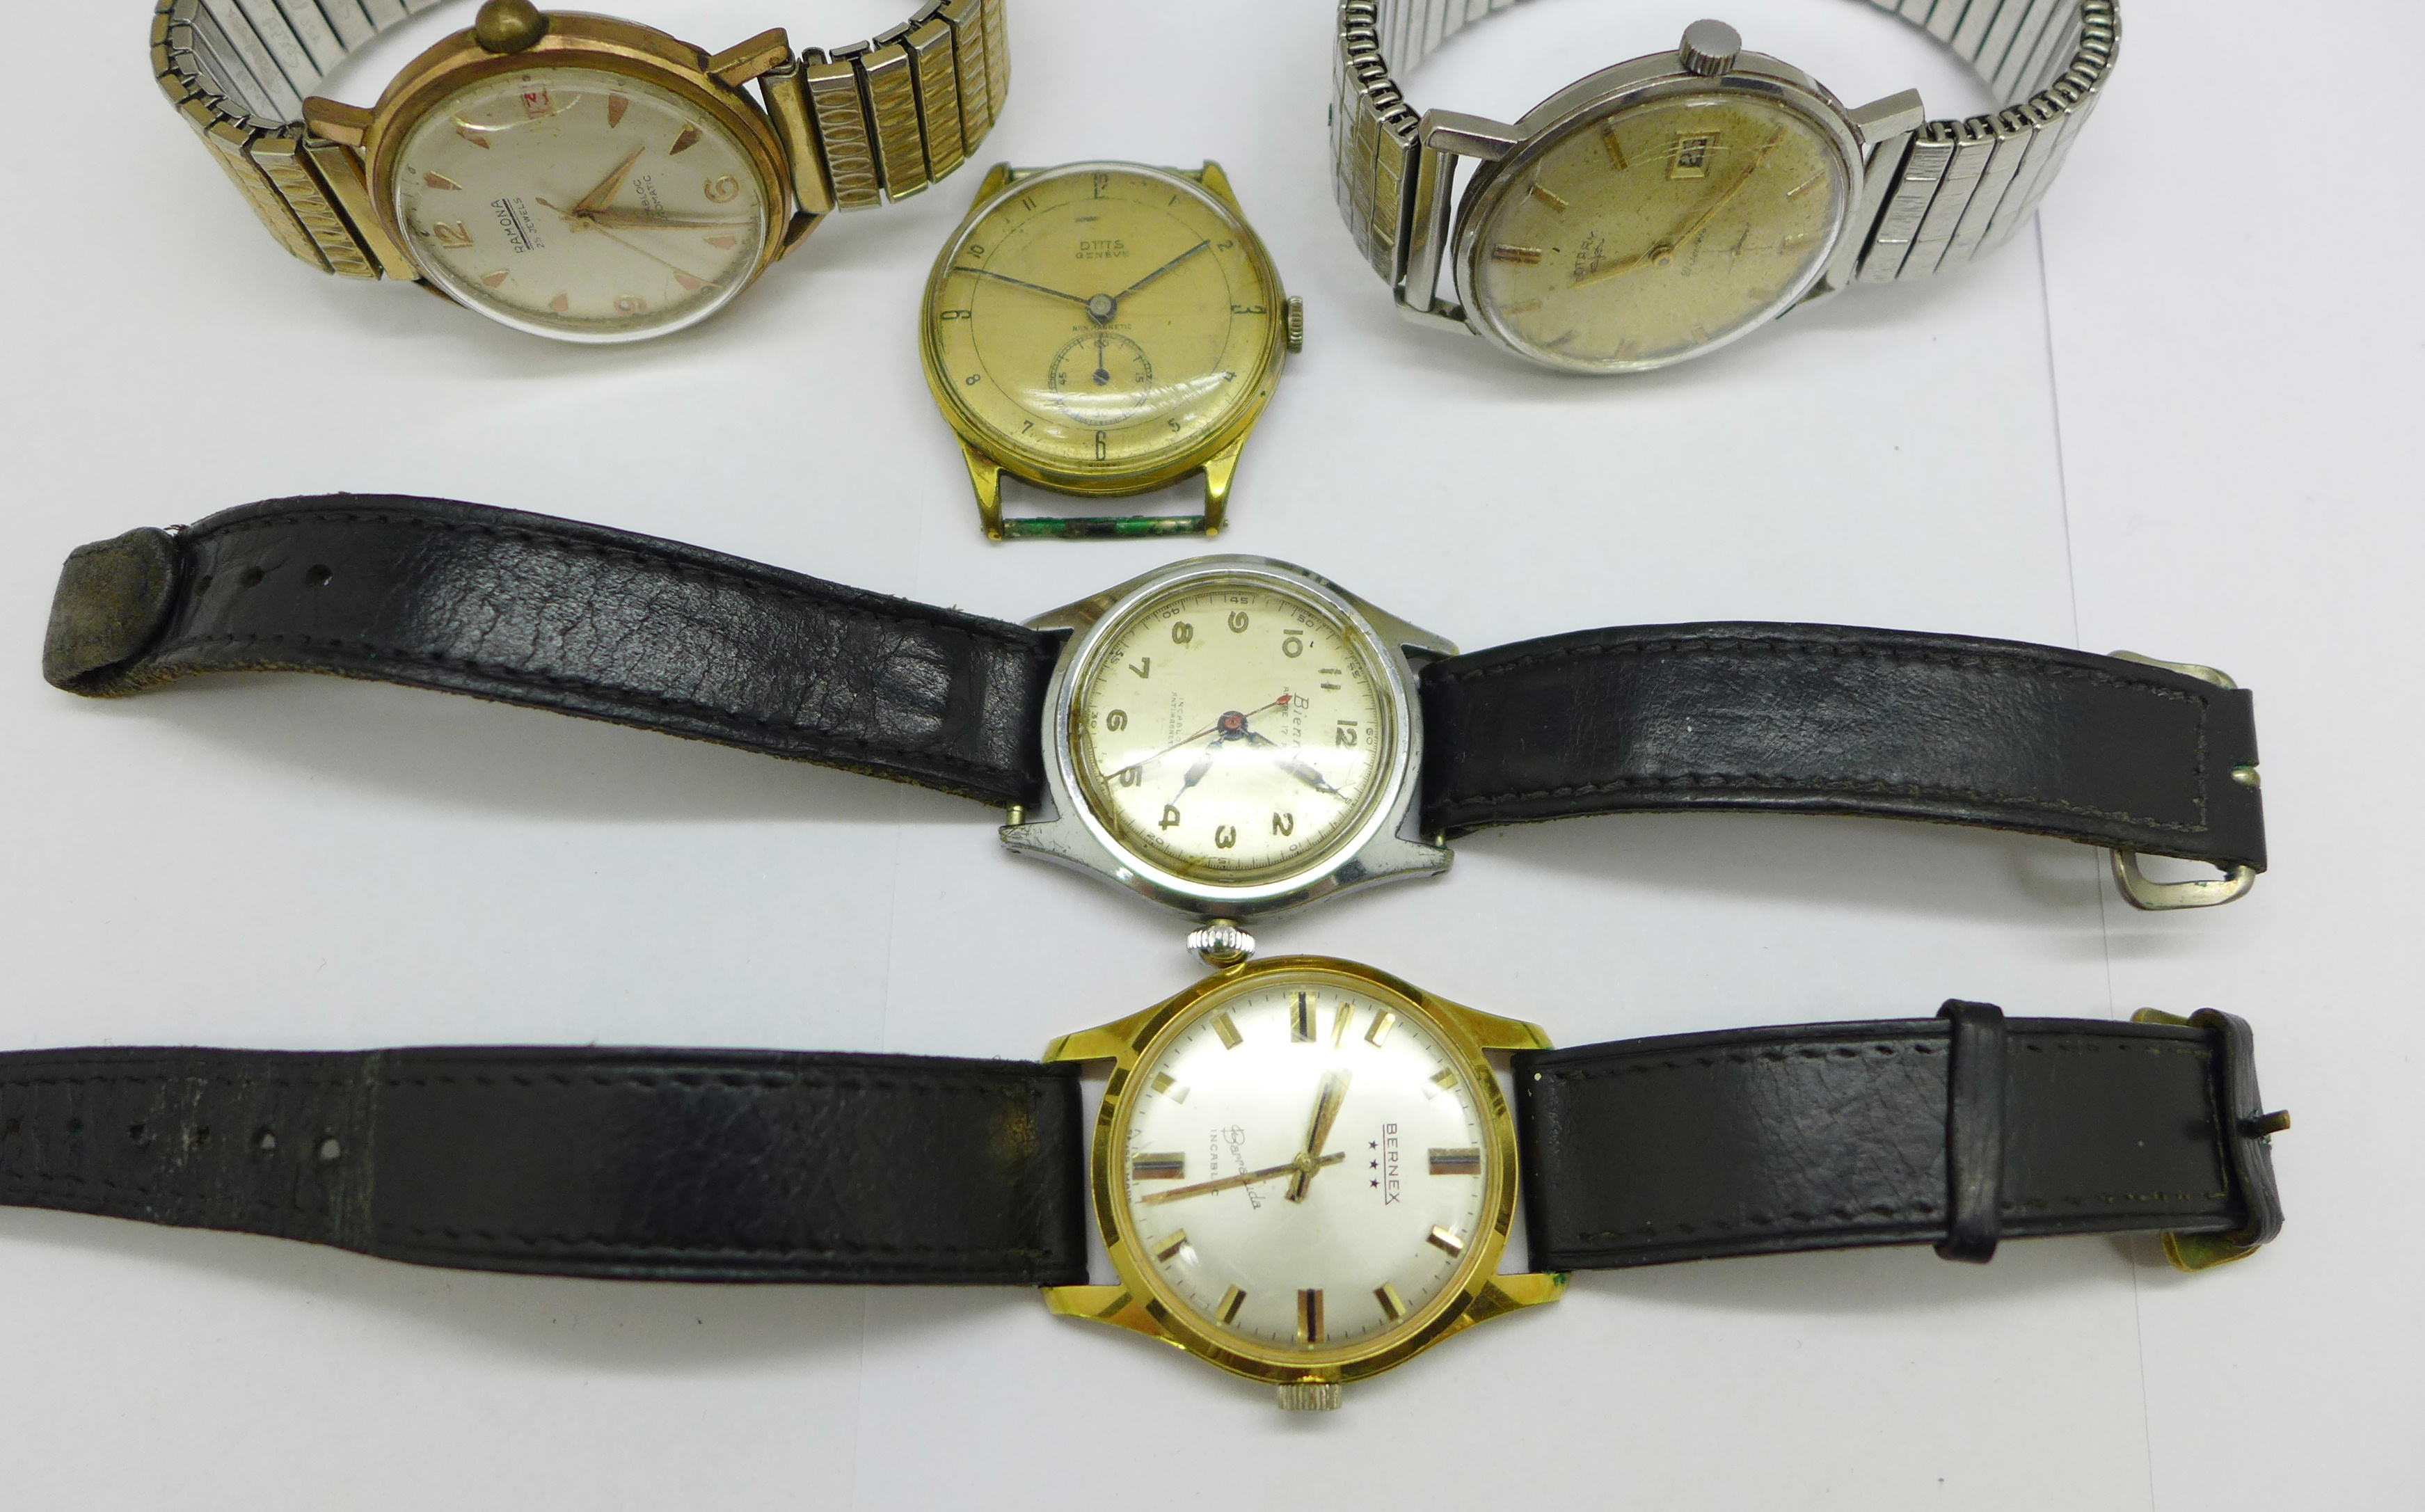 Five wristwatches including Bernex Barracuda and Ramona automatic - Image 3 of 5